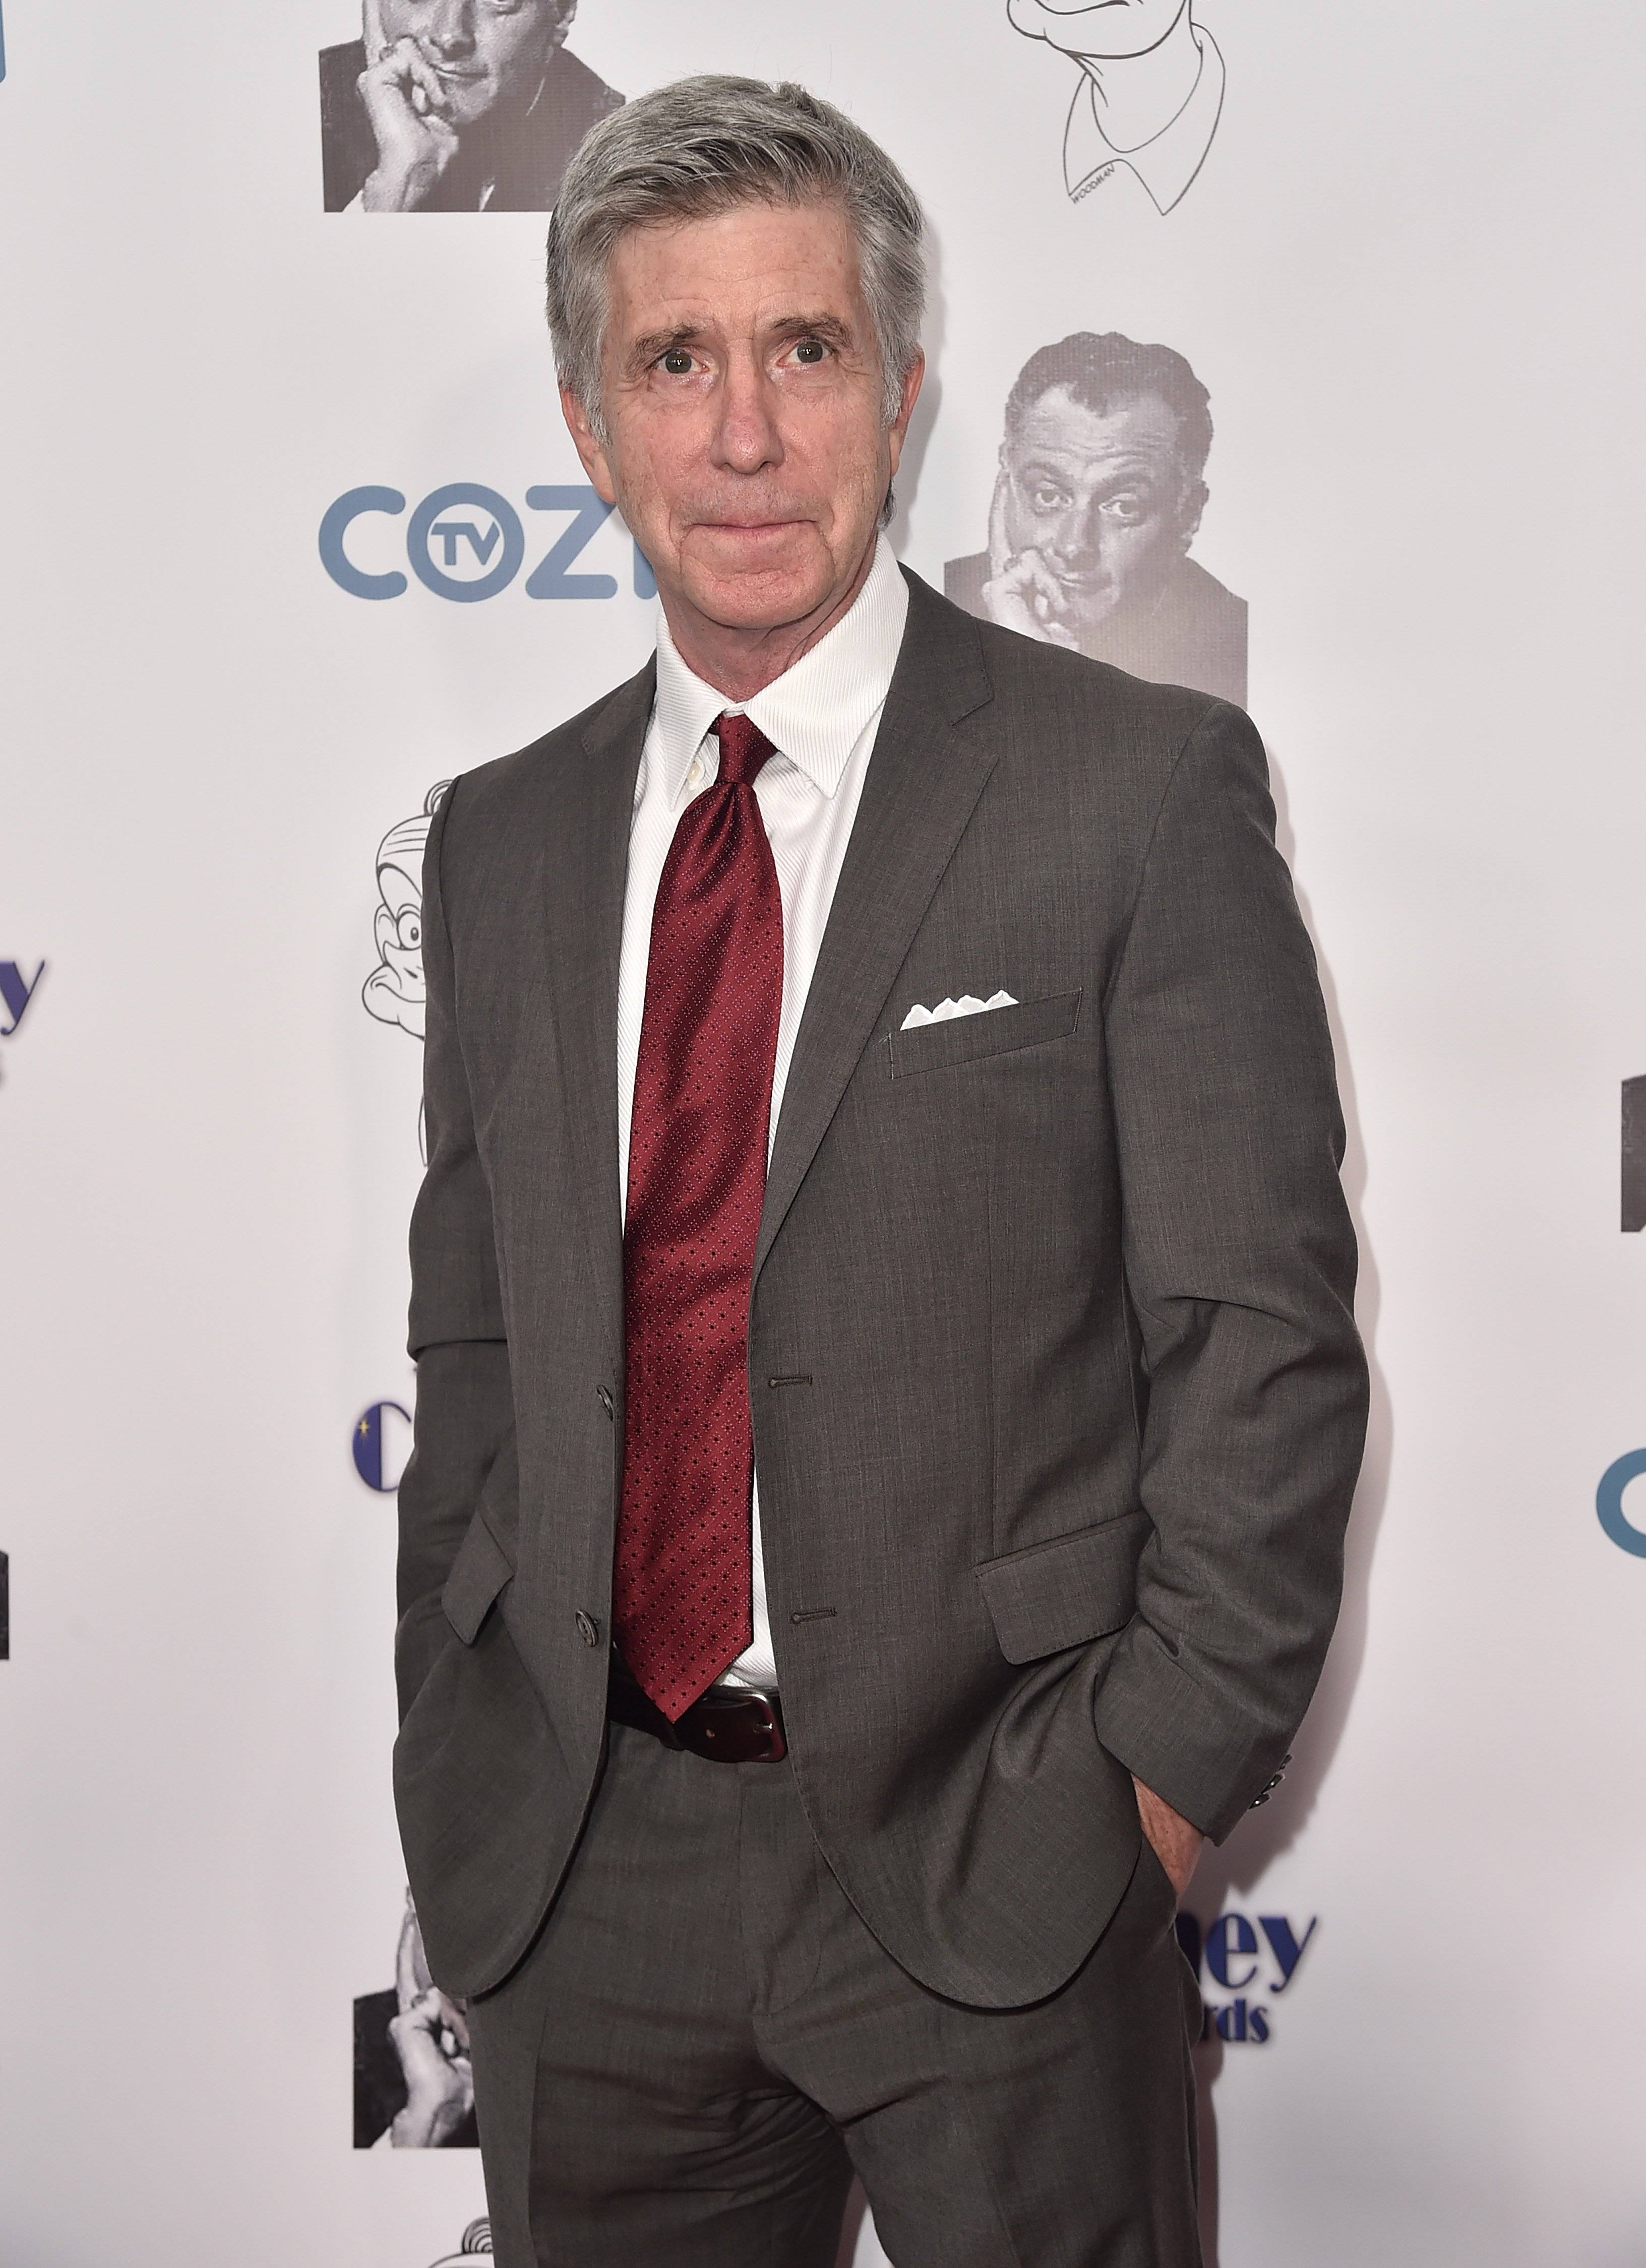 Tom Bergeron at the 3rd Annual Carney Awards at The Broad Stage on October 29, 2017 | Photo: Getty Images